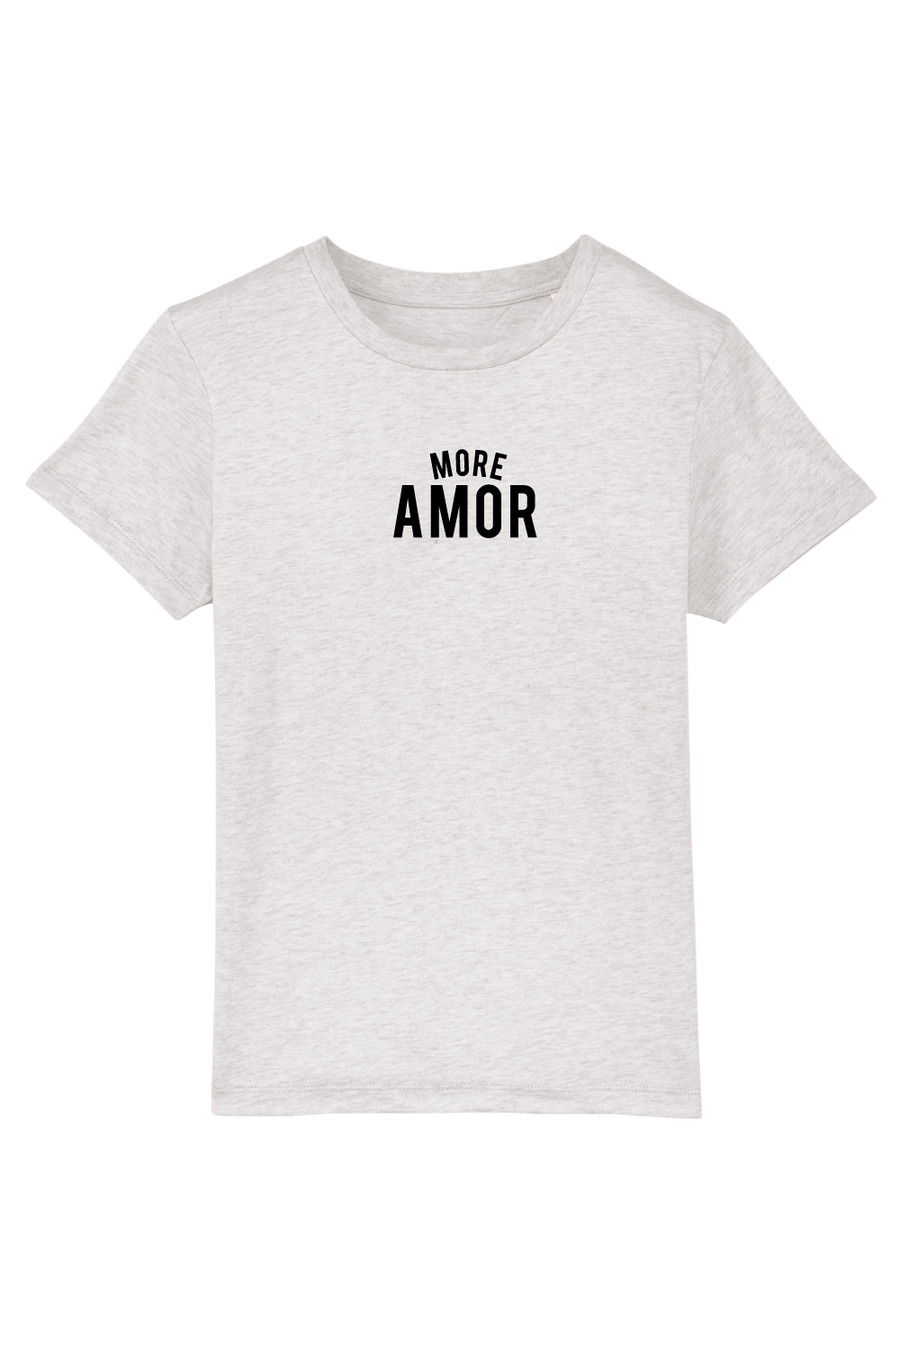 More amor kids - Joh Clothing